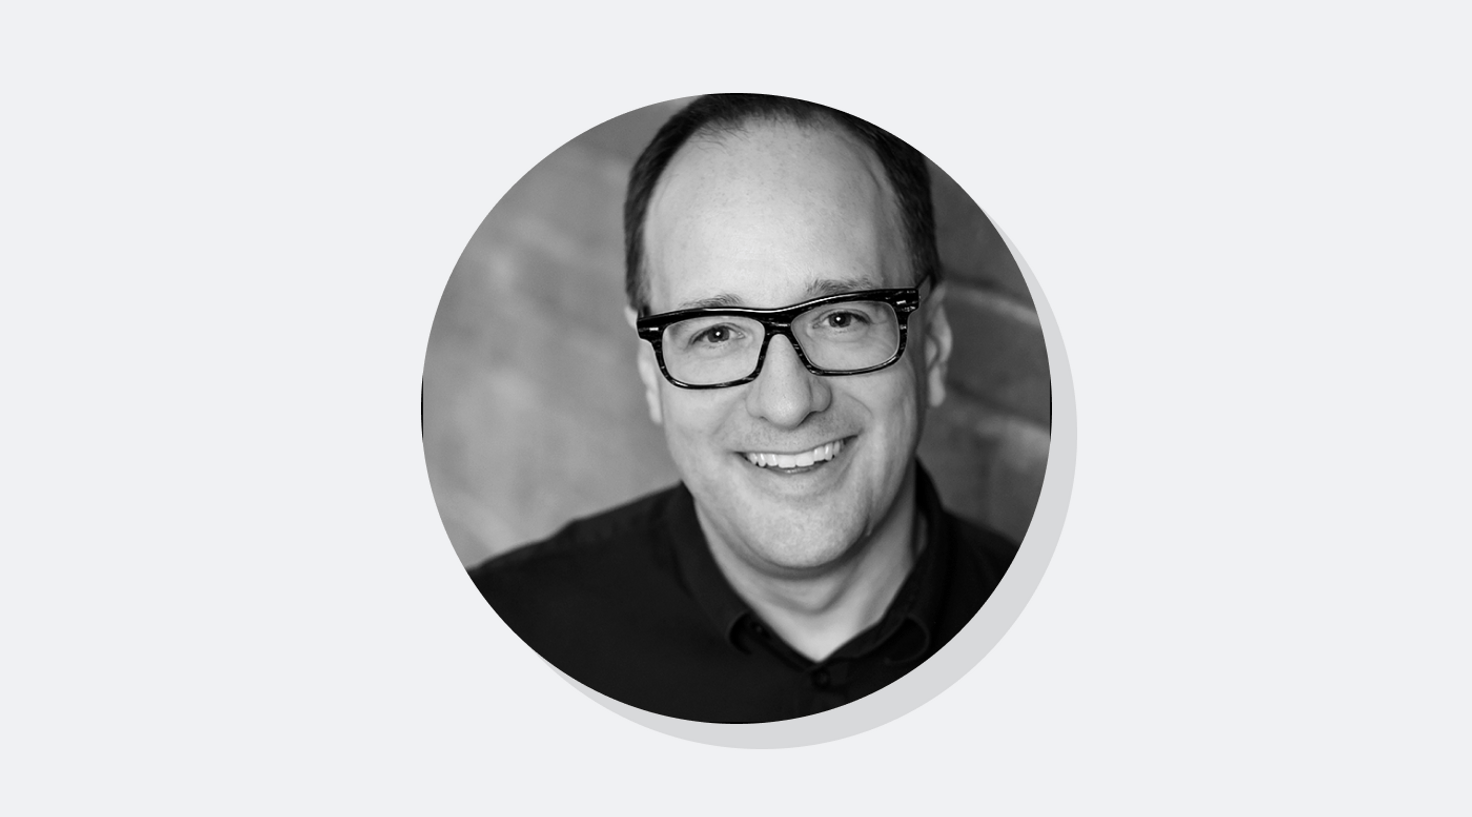 Image of Scott Baldwin, Community Lead and Product Evangelist at Prodcutboard